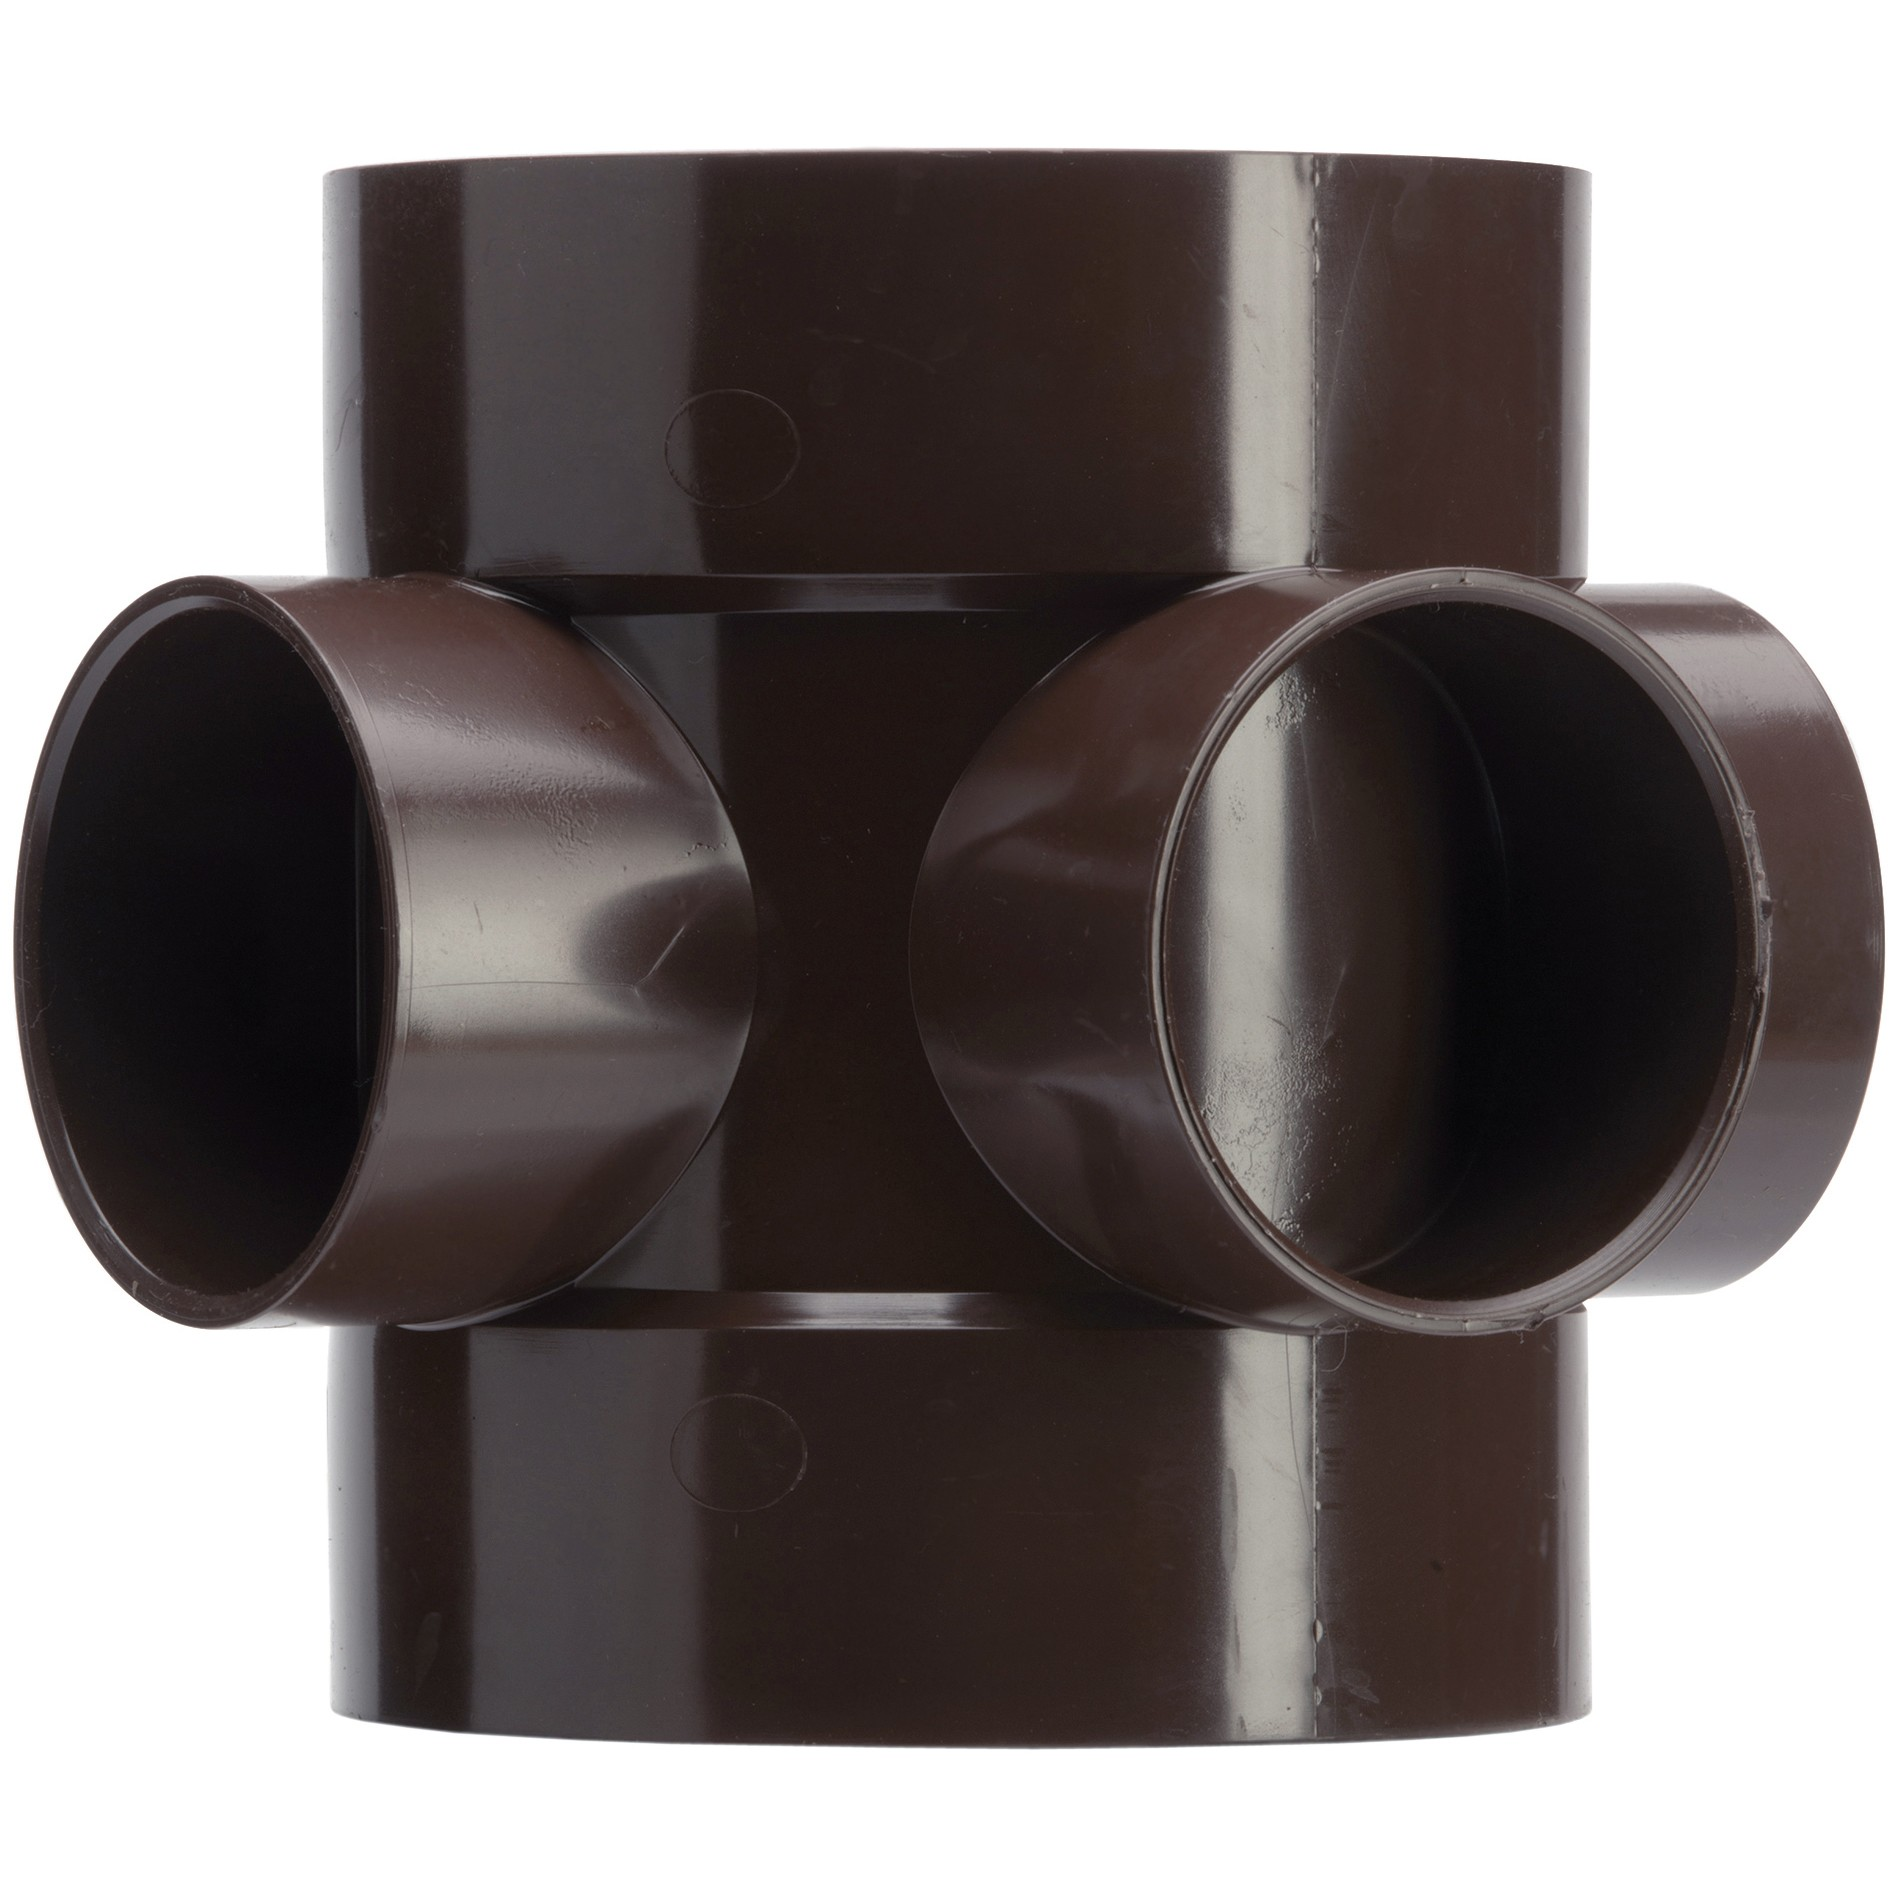 Polypipe 110mm Soil Double Socket Short Boss Pipe - Brown